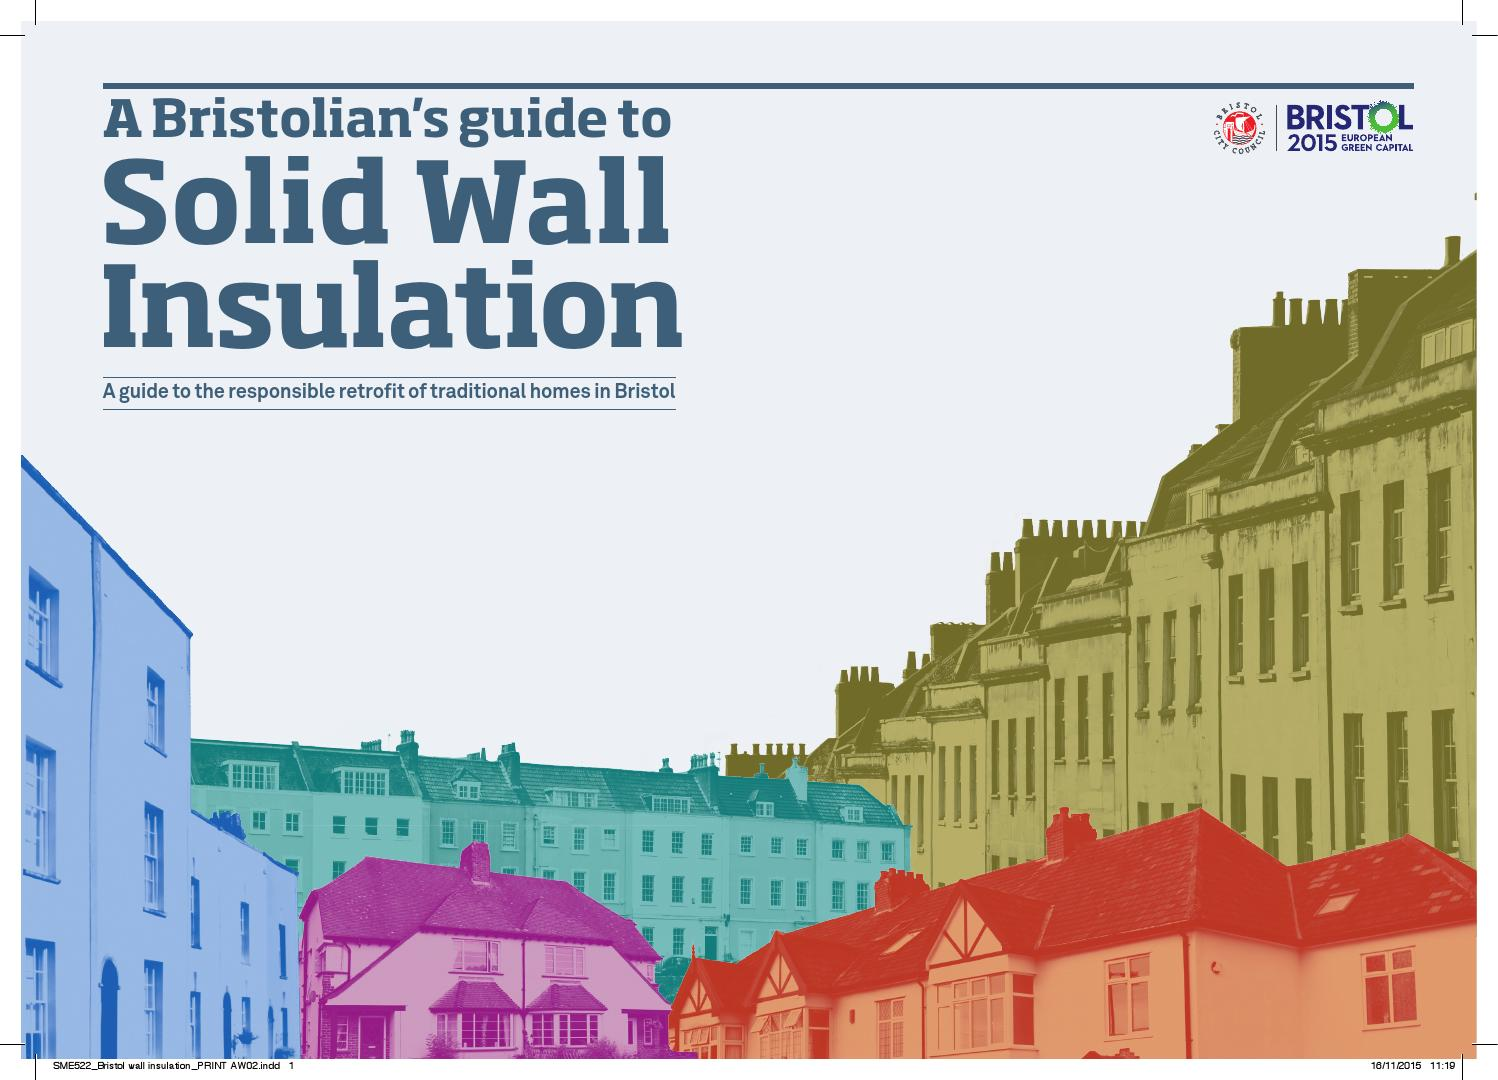 A bristolians guide to solid wall insulation by bristol city a bristolians guide to solid wall insulation by bristol city council issuu solutioingenieria Image collections